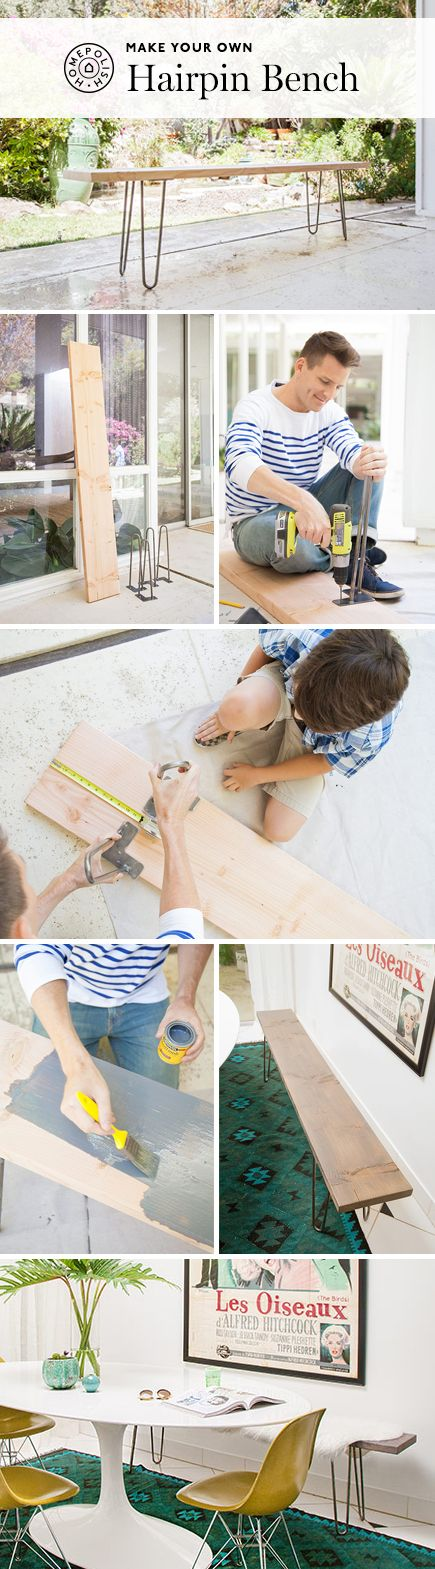 How to Make a Hairpin Bench With Your Friends!